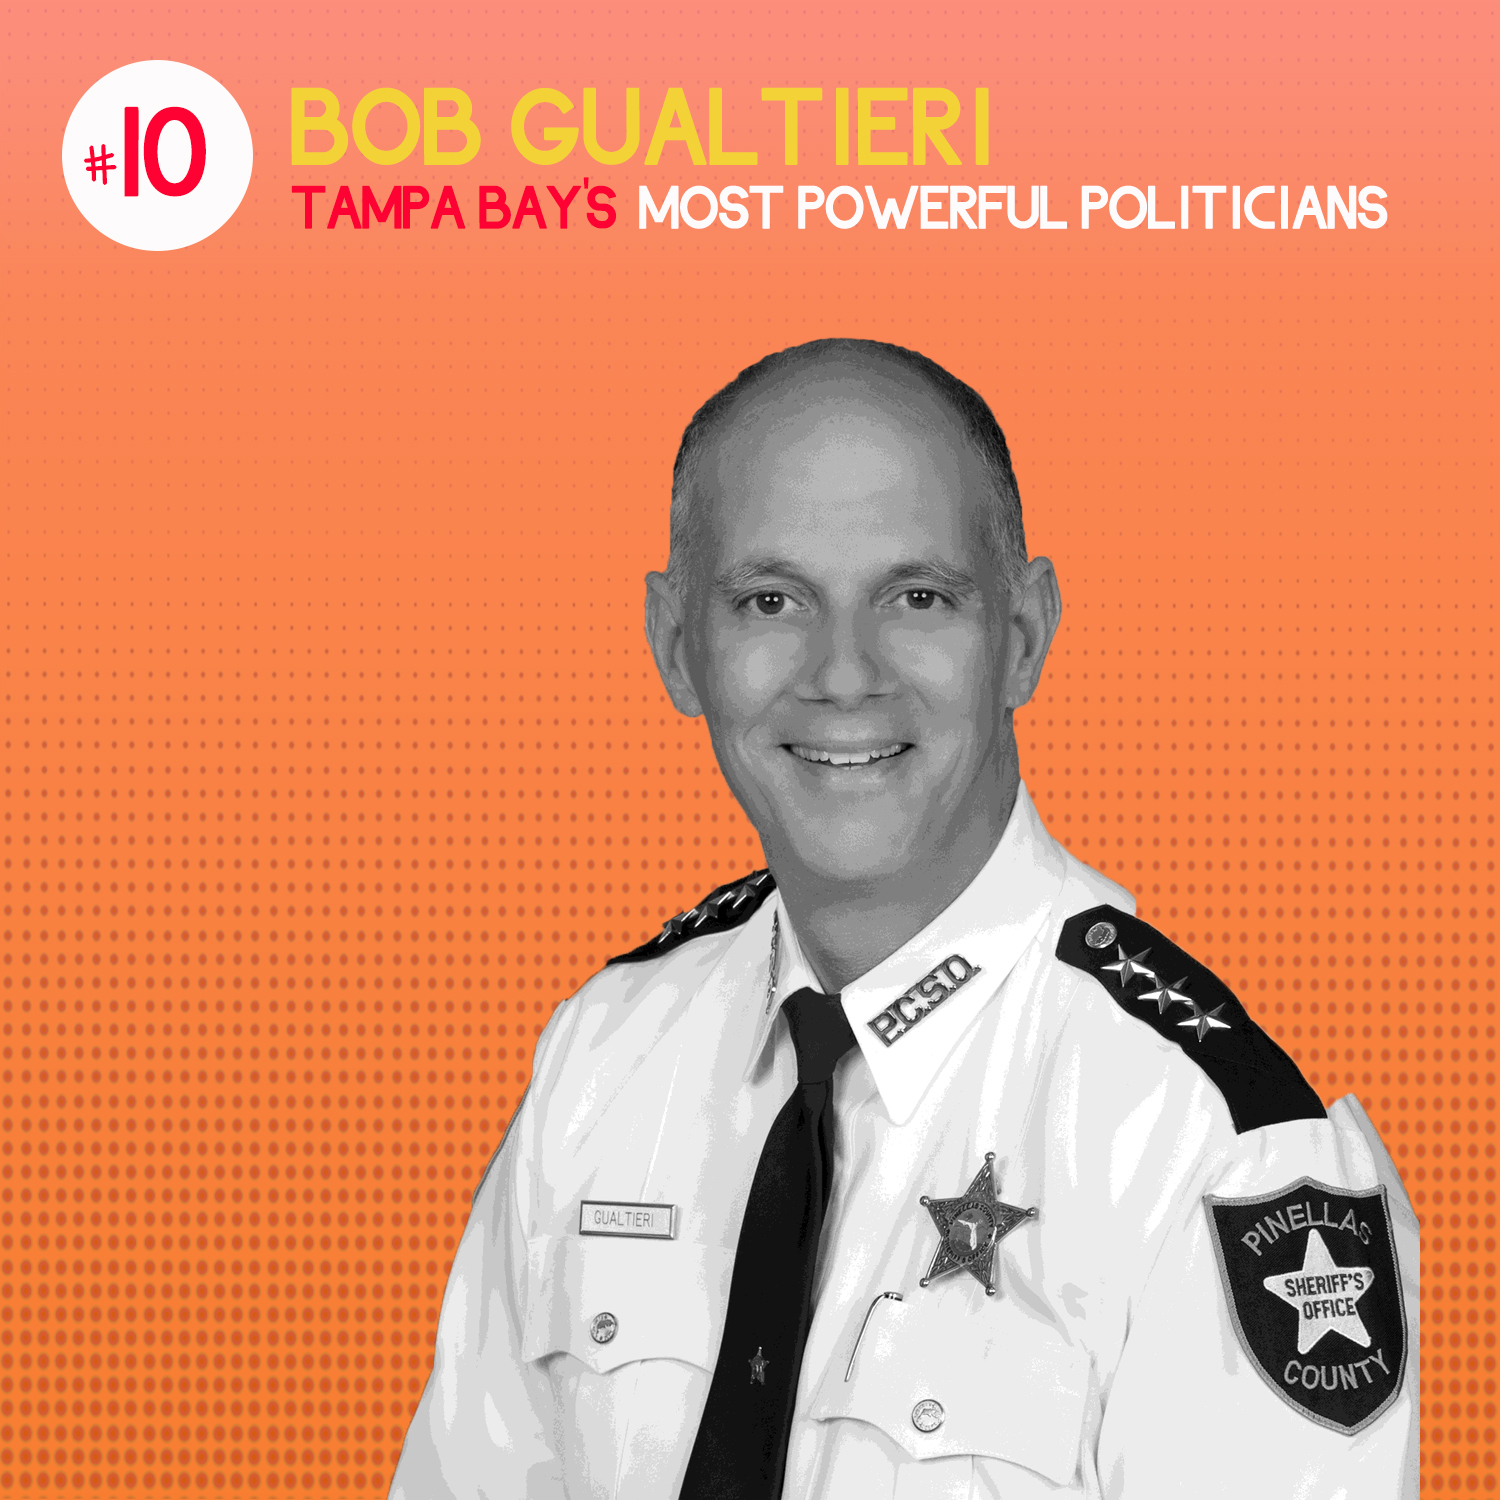 #10 on list of Tampa Bay's Most Powerful Politicians – Bob Gualtieri